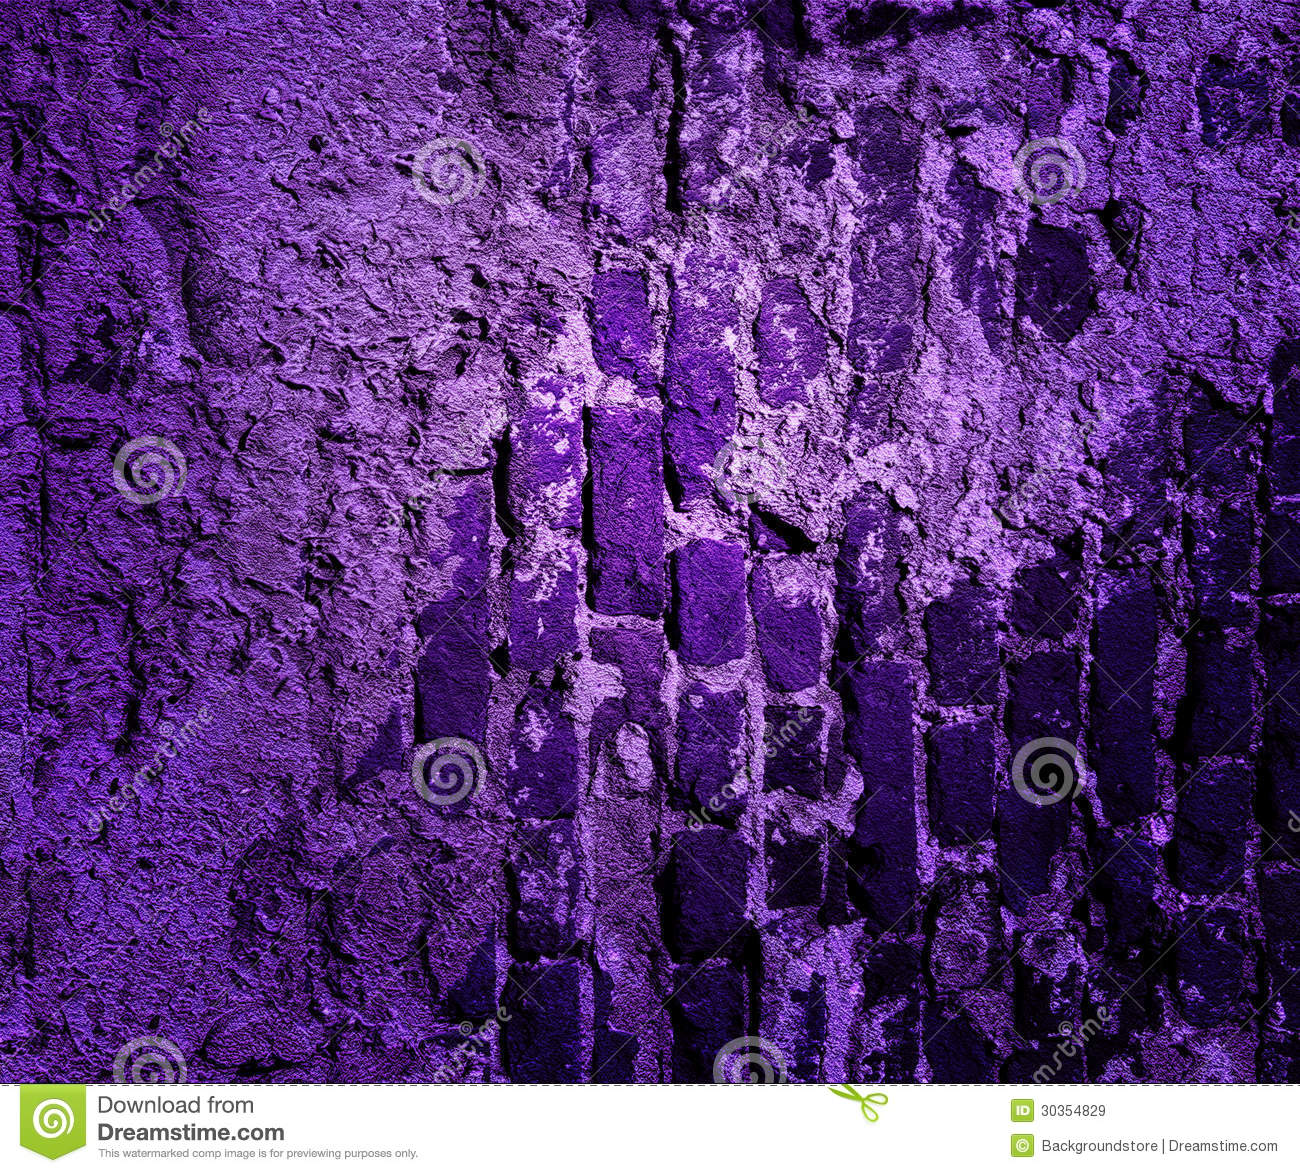 Sad Tumblr Quotes About Love: Violet Grunge Wall Texture Royalty Free Stock Images